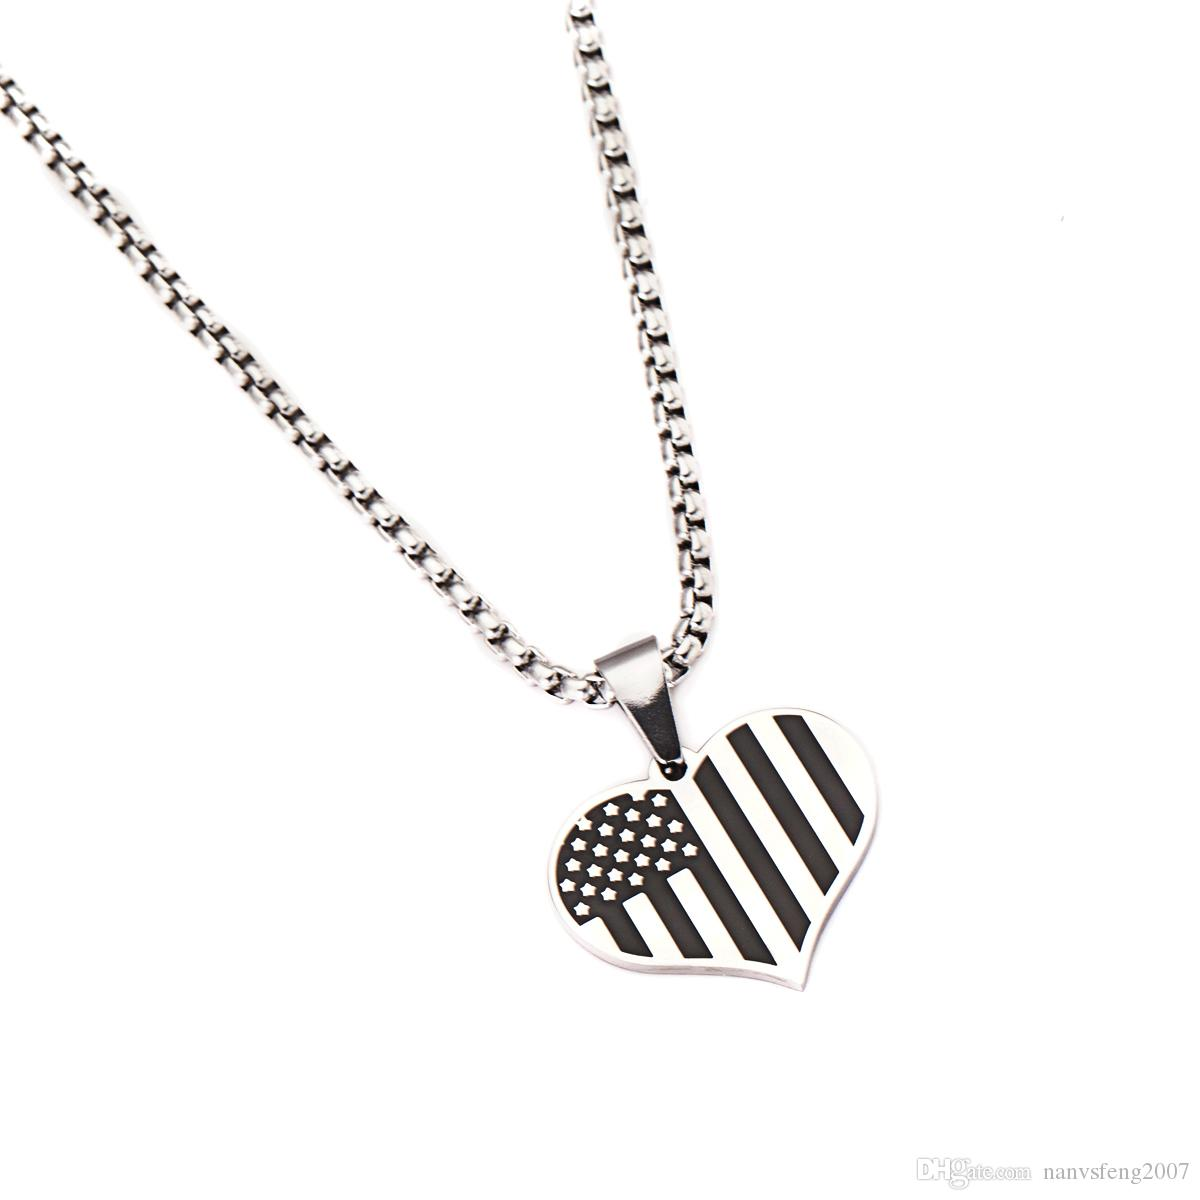 Trendy New Fashion Jewelry Love Heart Design Flag Of The USA Design Pendant Necklace Gift For Women Girl